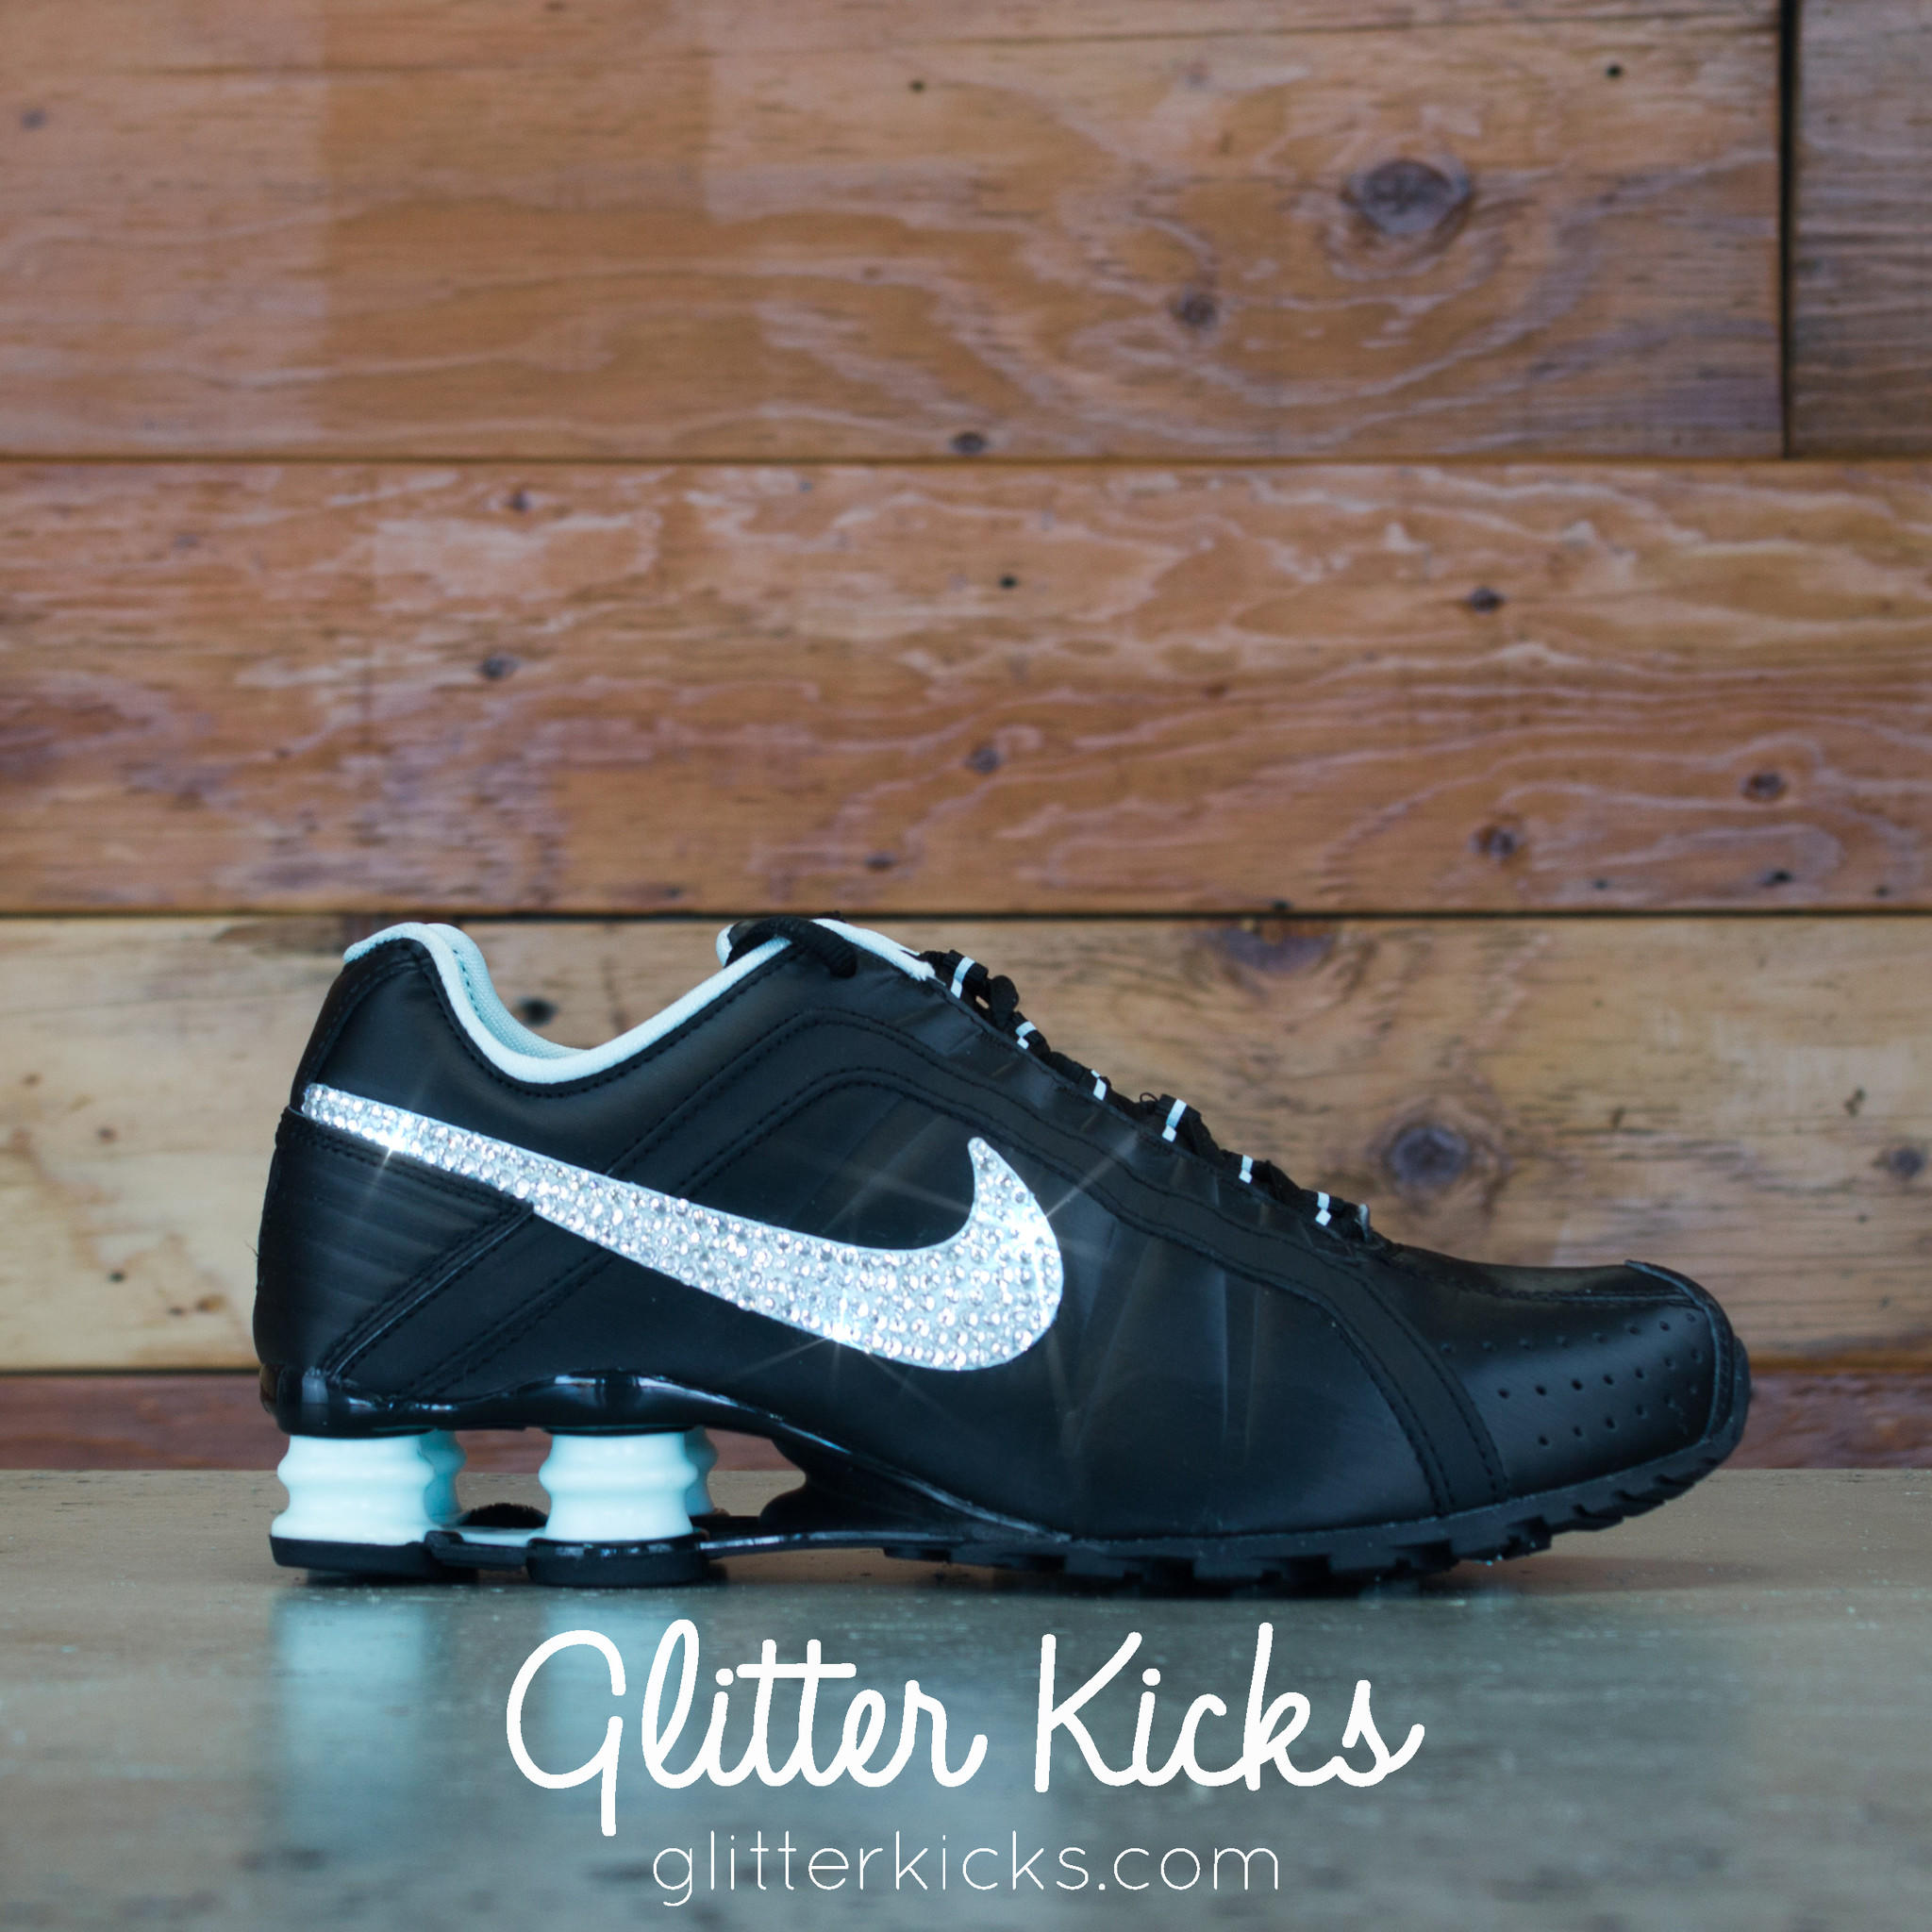 Nike Shox Current Glitter Kicks Running Shoes Black Tiffany df4afb68fd